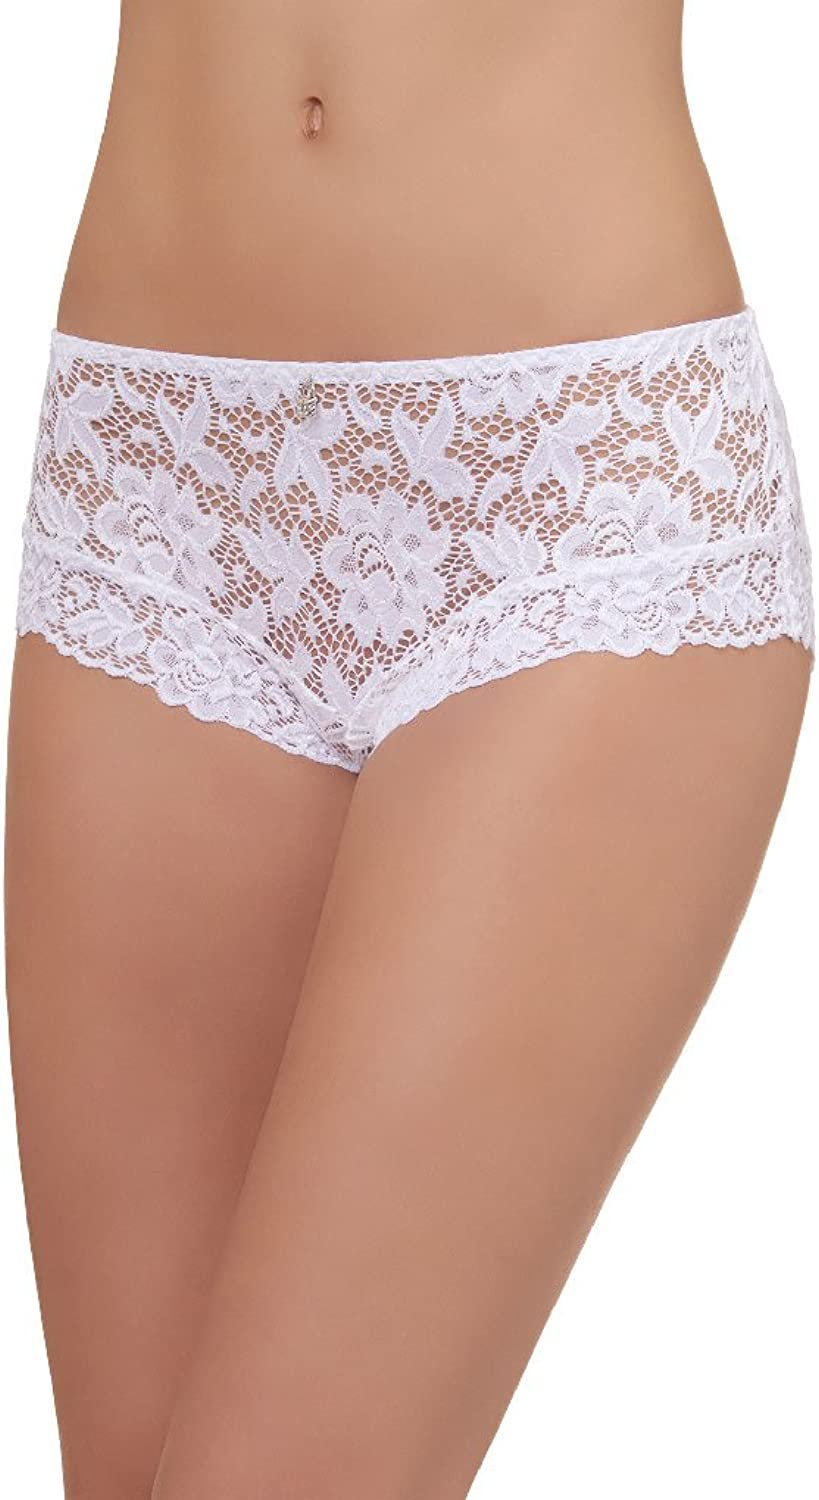 Barbara Cecilia White Shorty 70641BL001